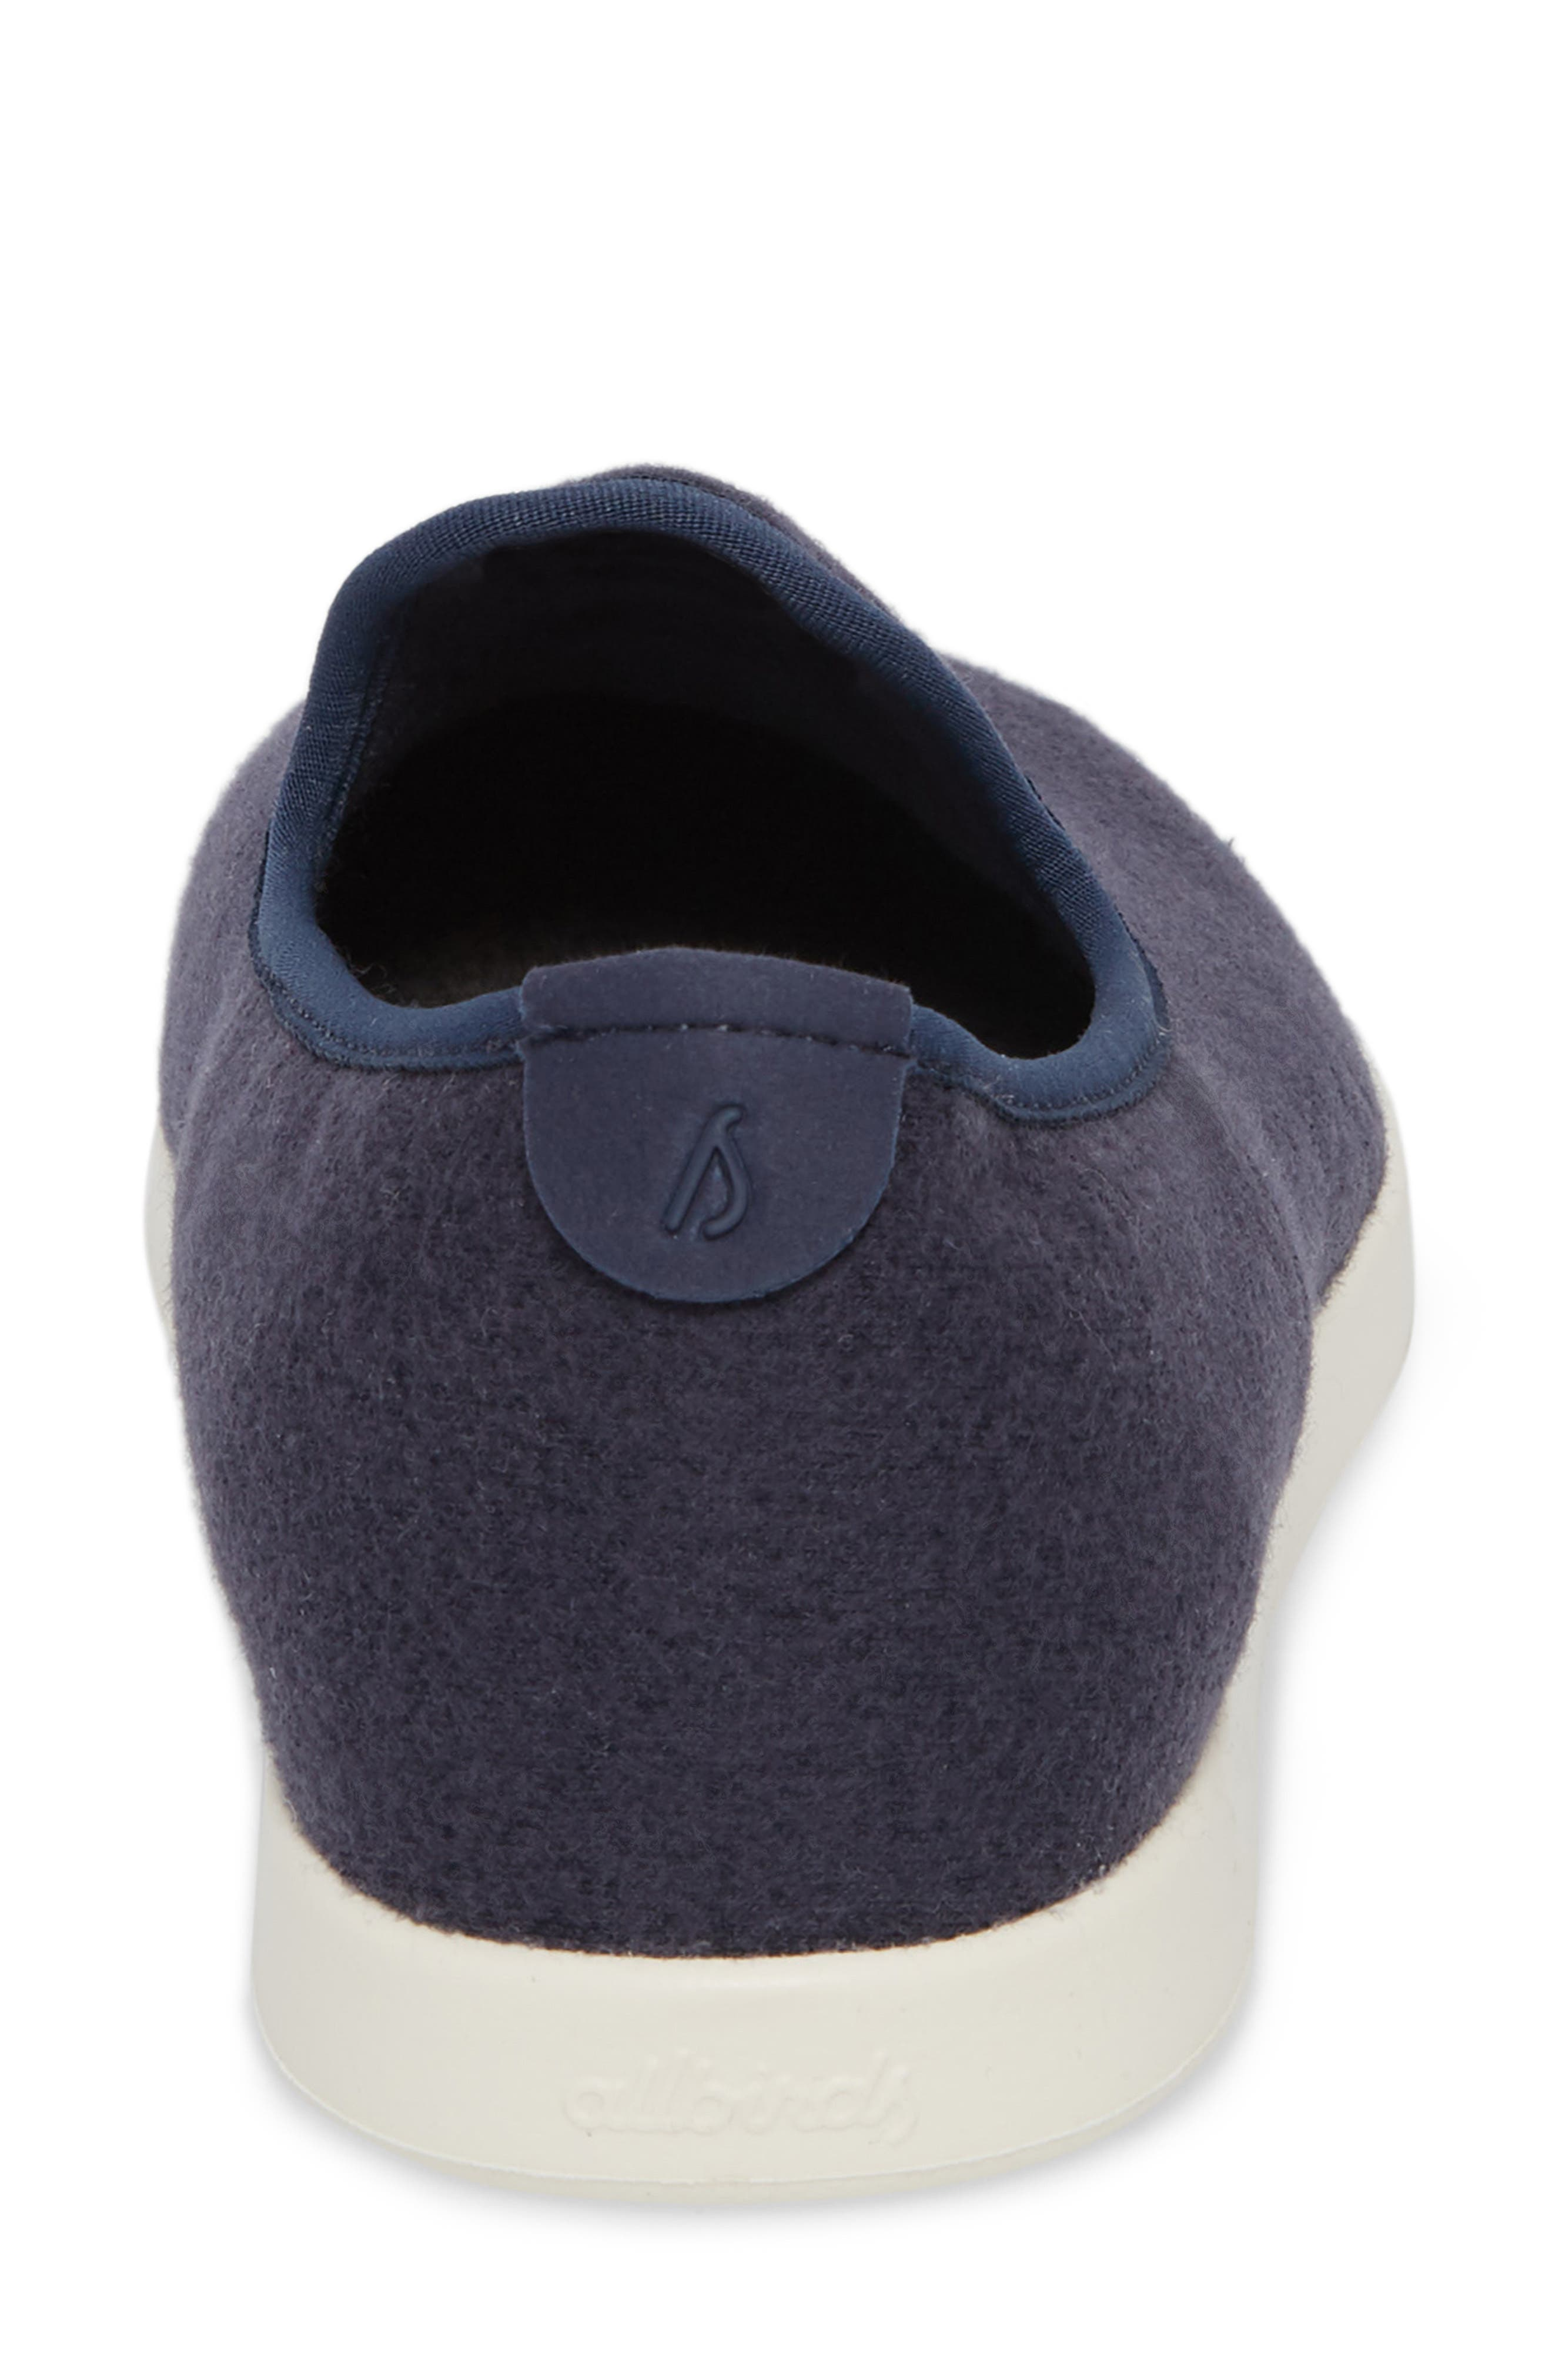 Wool Lounger,                             Alternate thumbnail 7, color,                             400